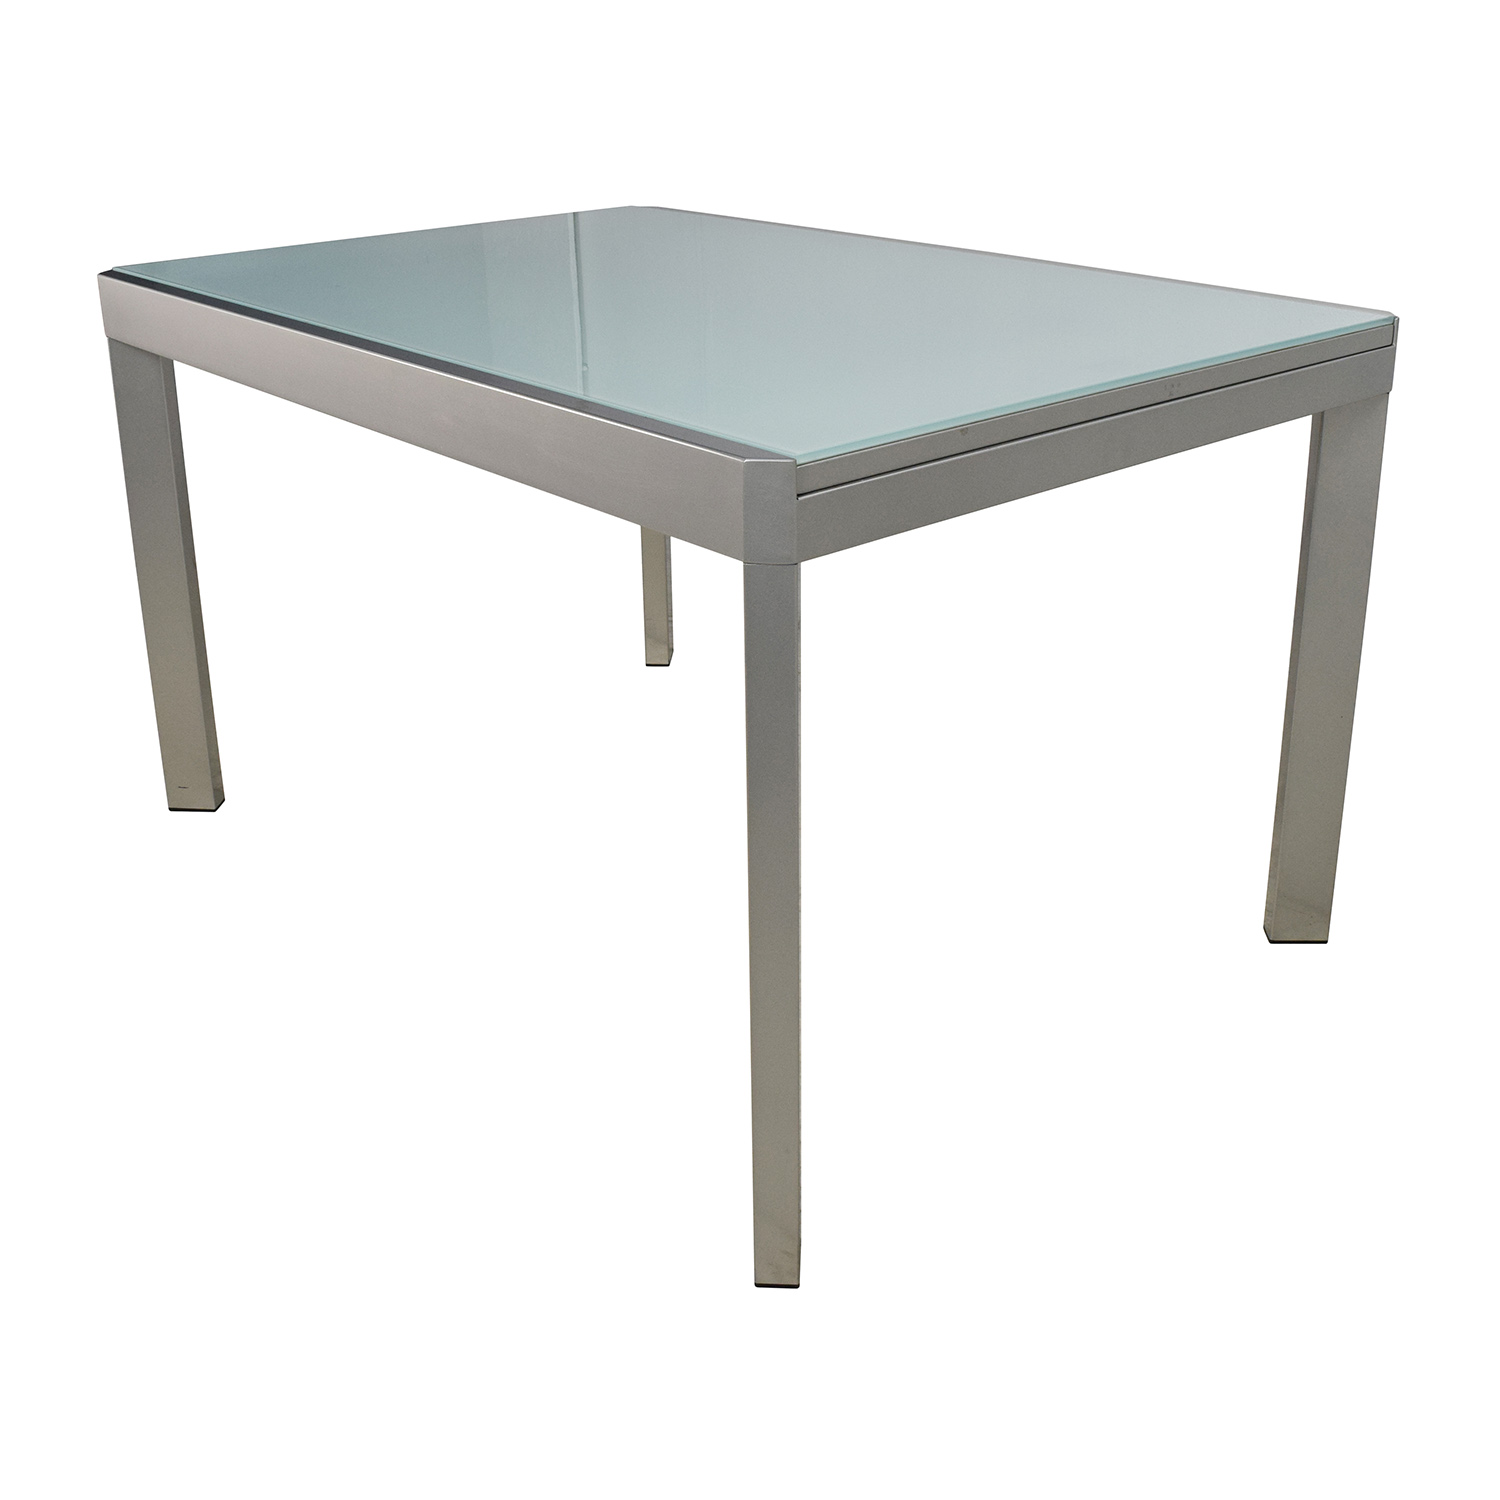 86 off calligaris calligaris extendable glass dining for Extendable glass dining table